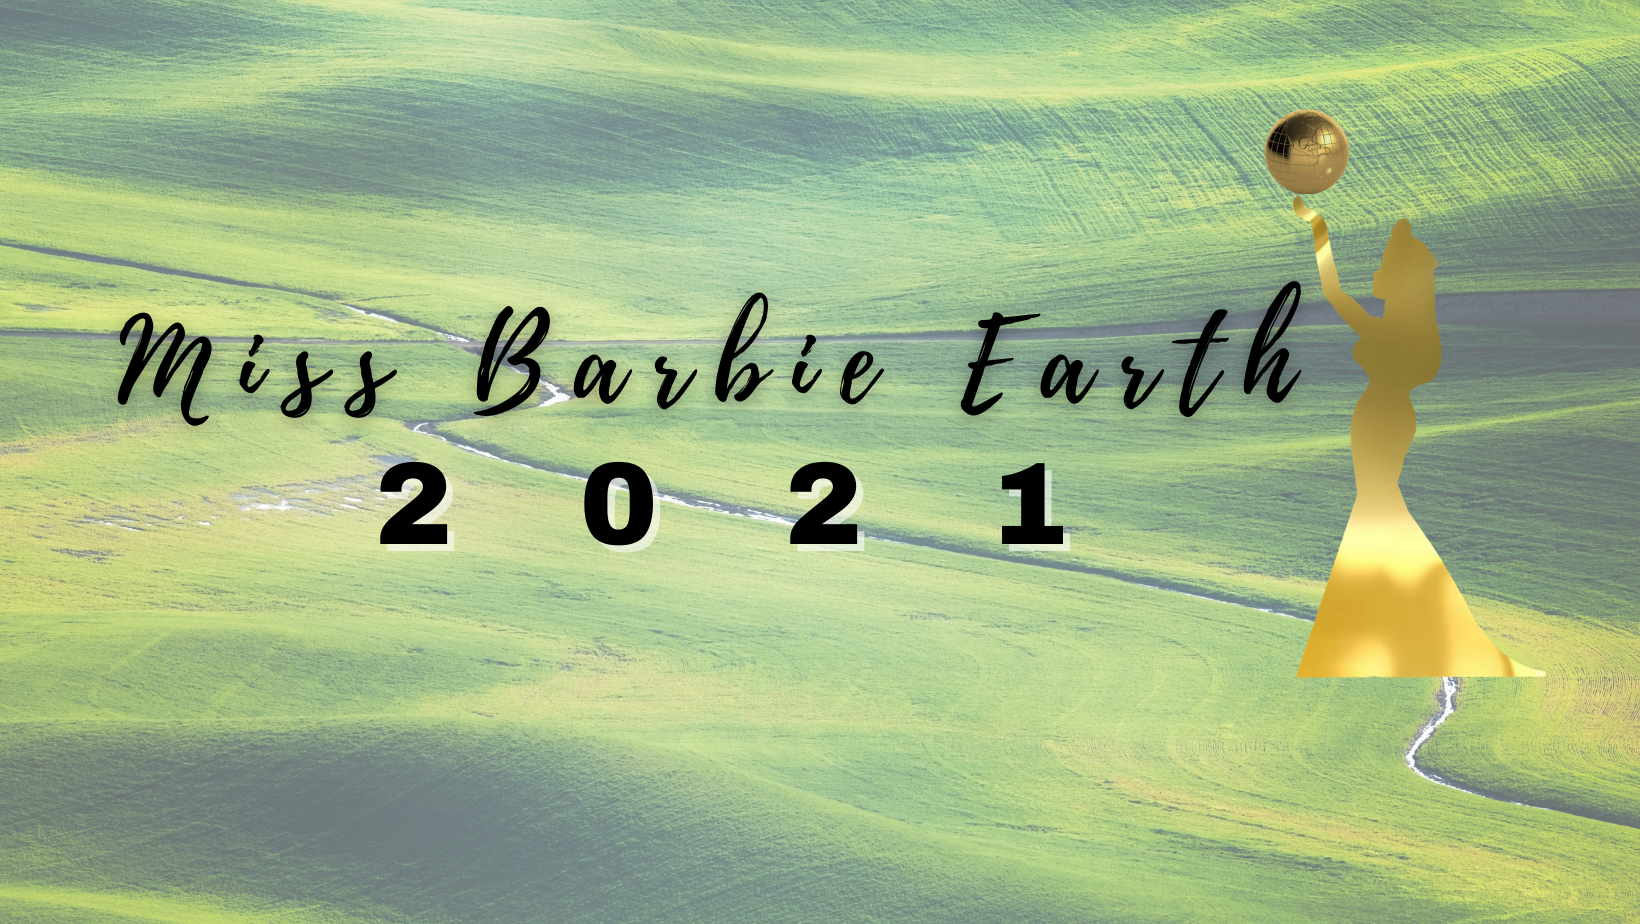 Miss barbie earth cover